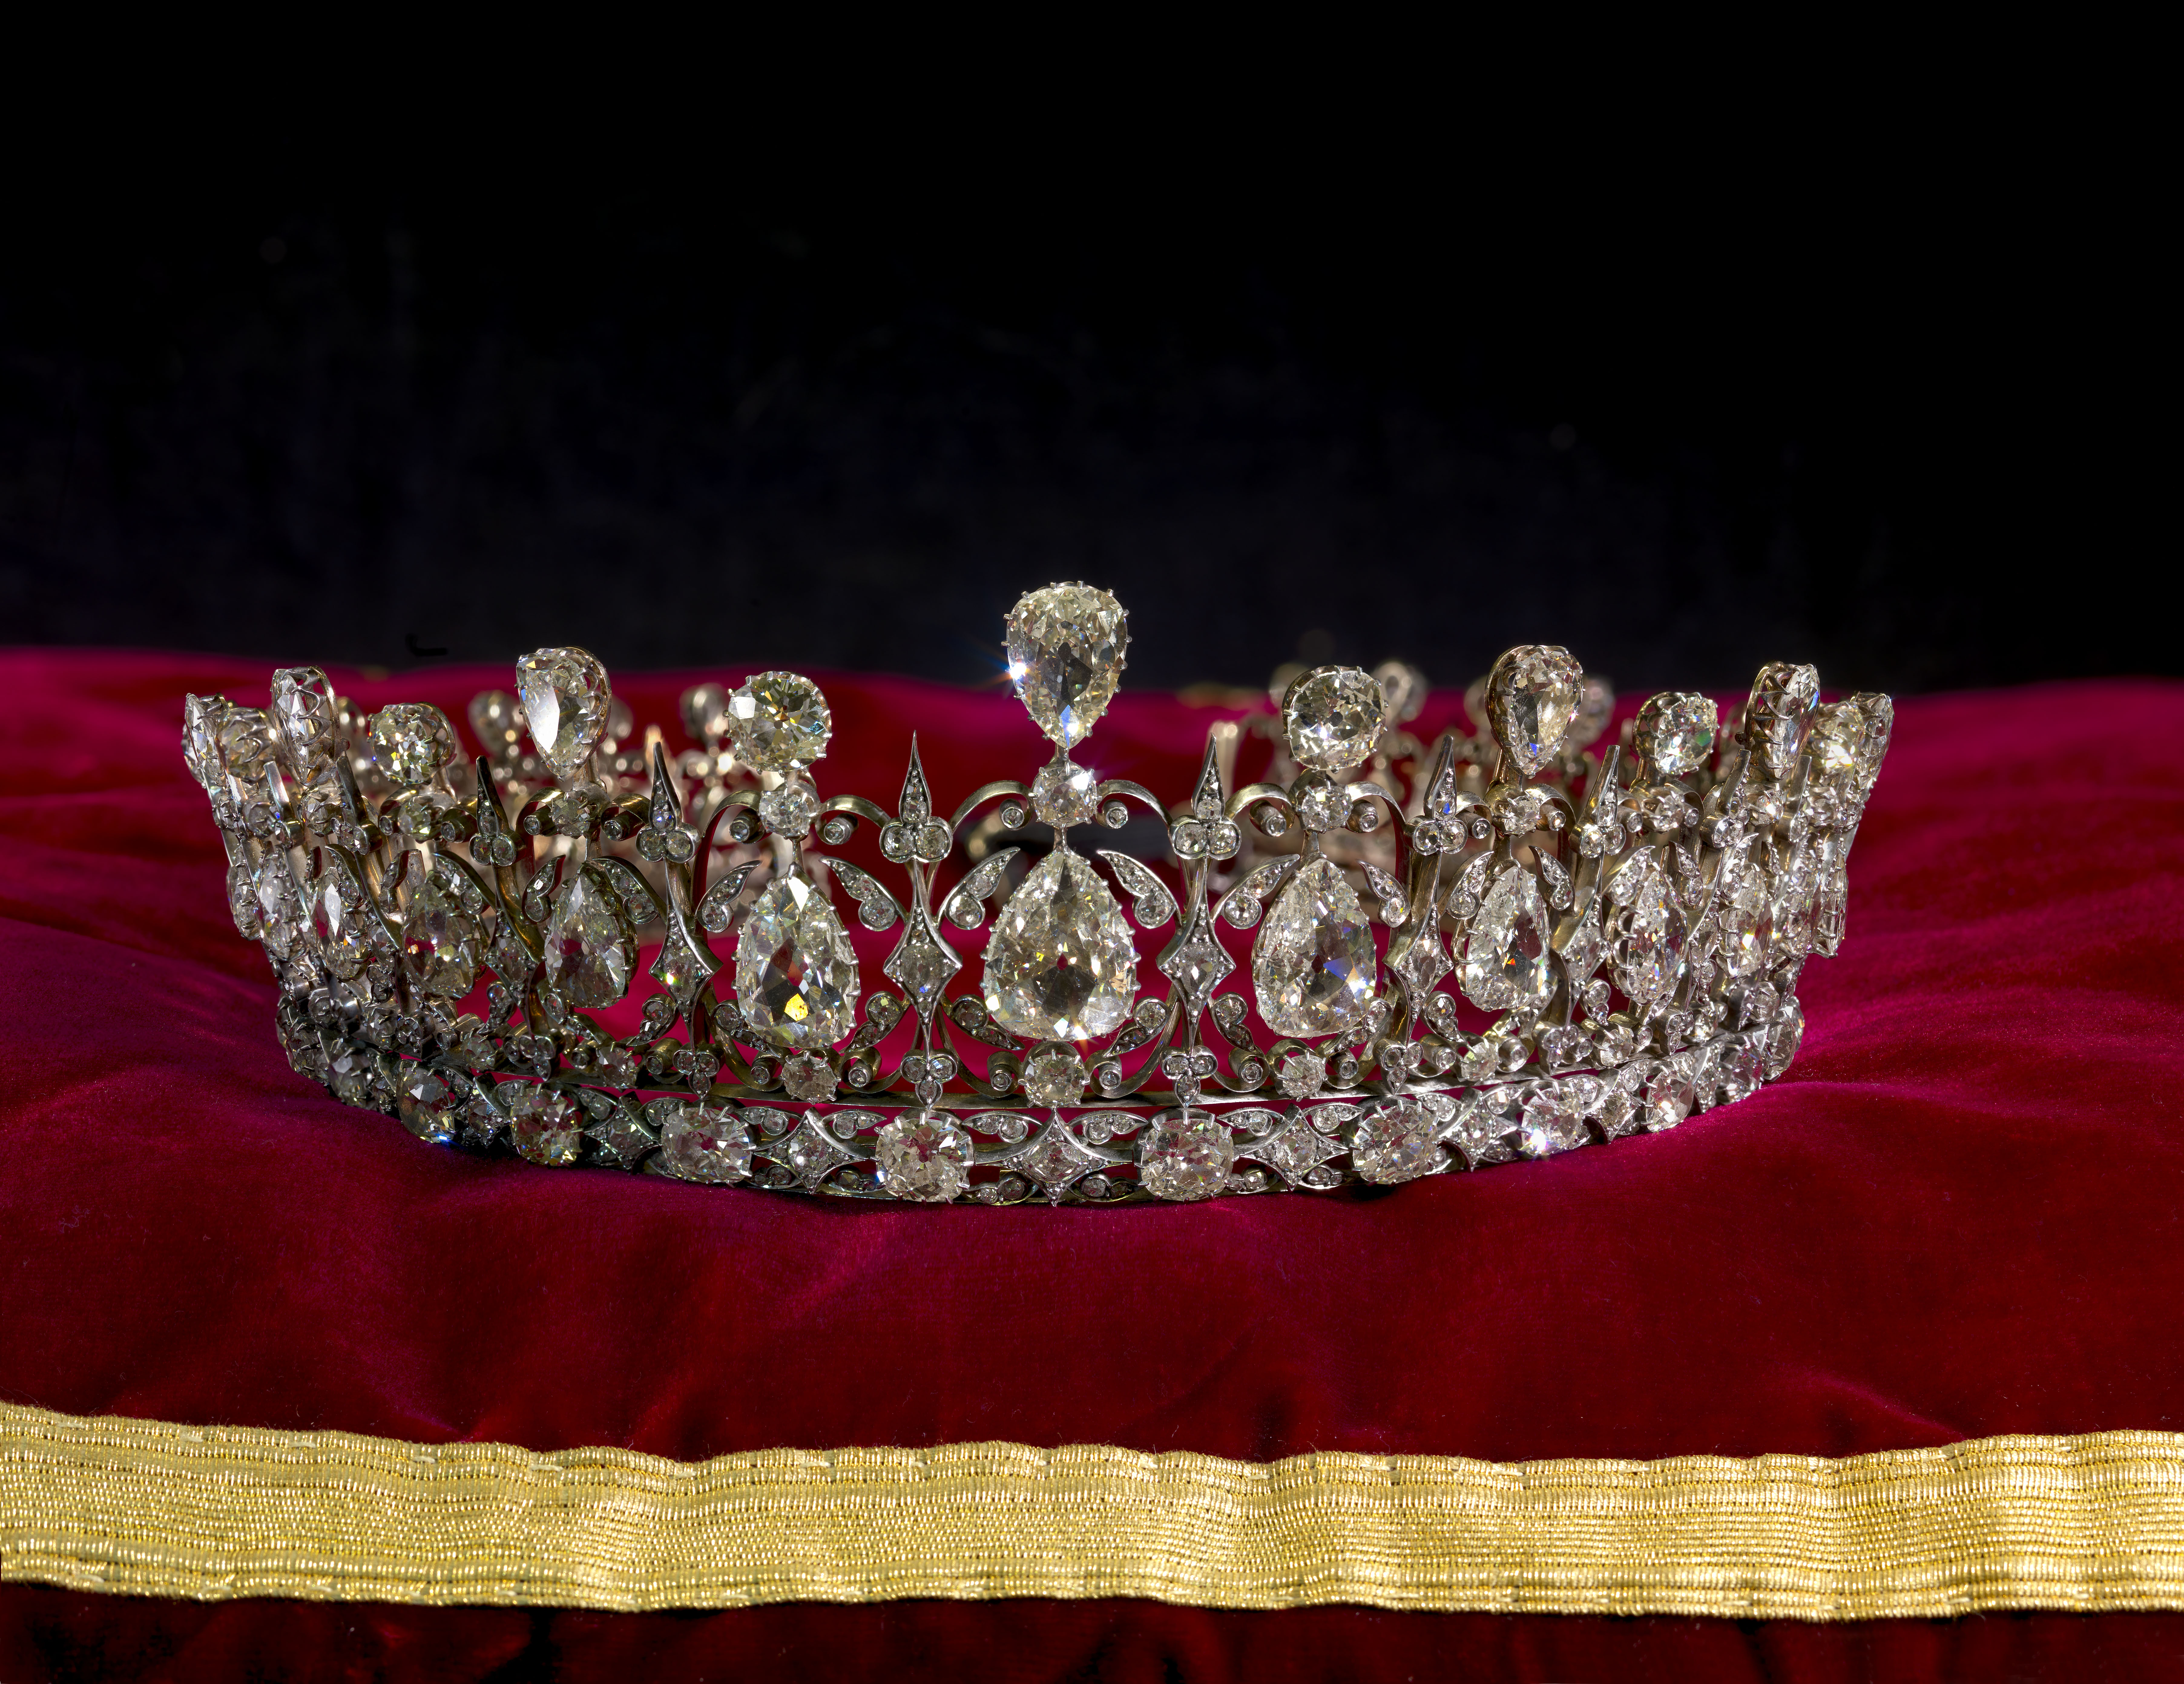 Meghans Choice Which Tiara Will She Choose For Her Wedding Day